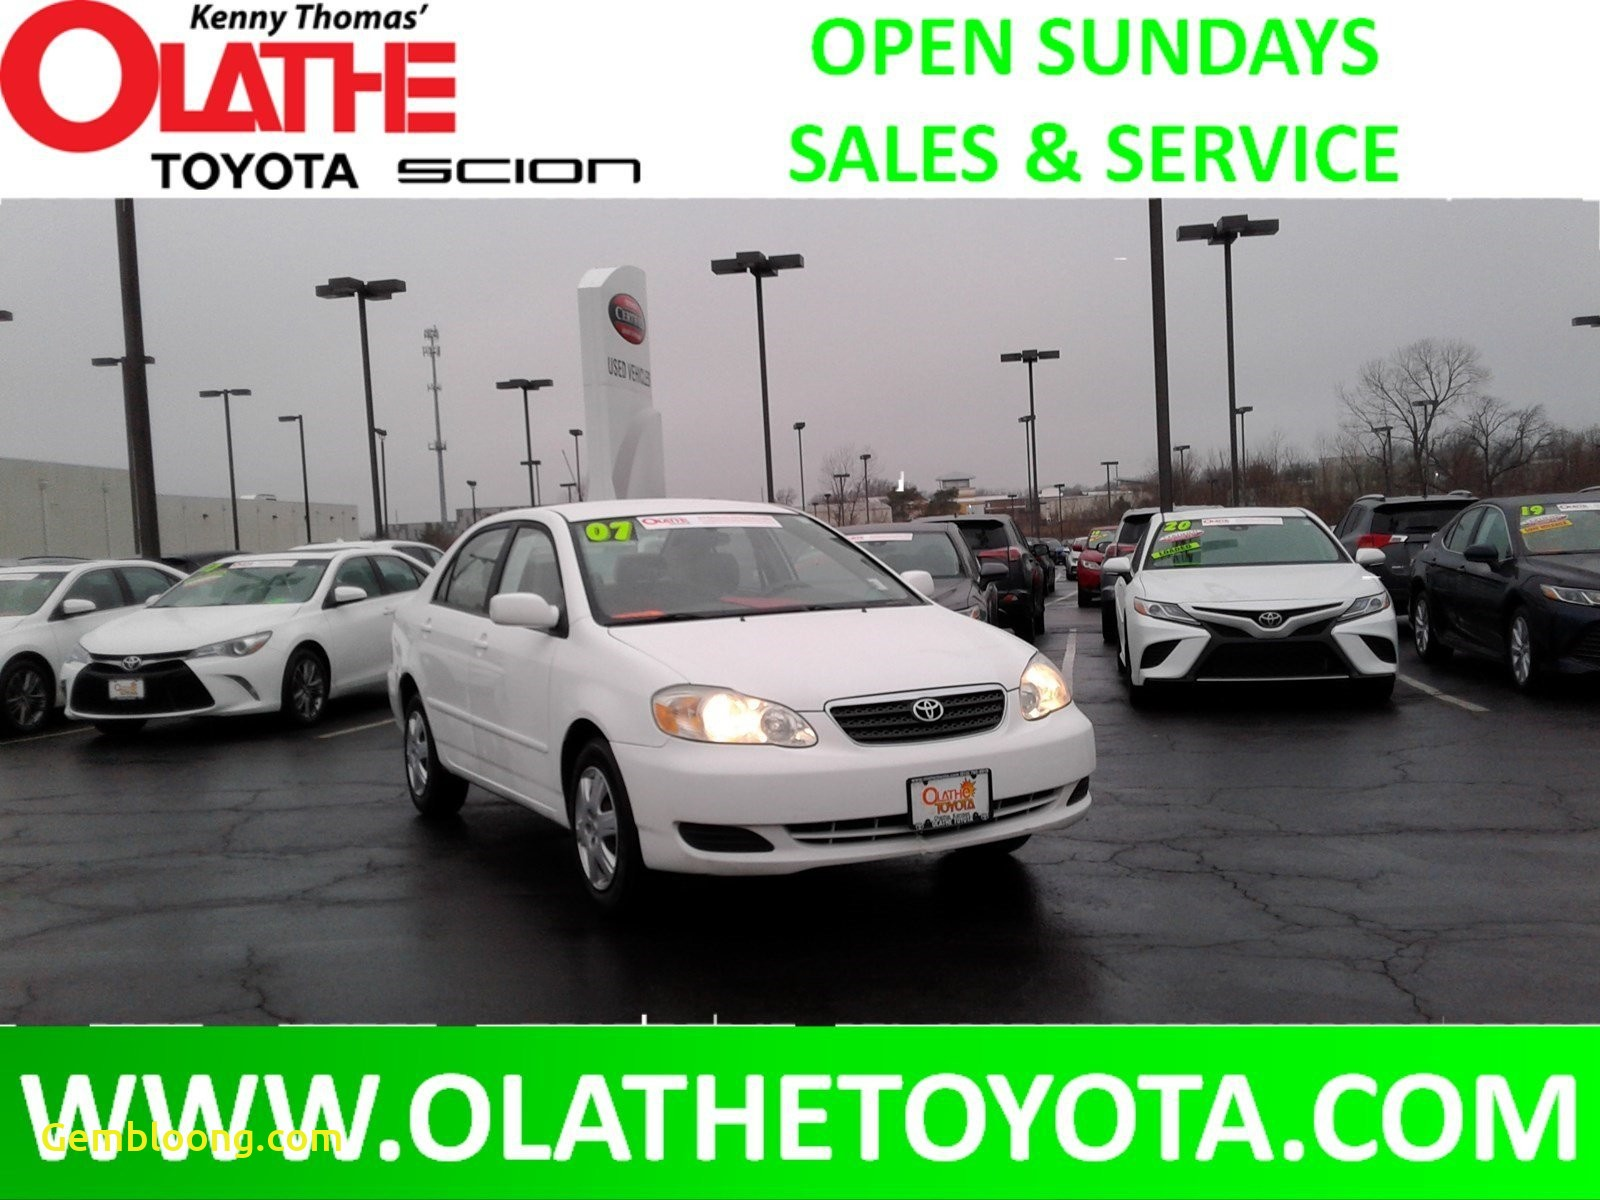 Cars for Sale Under 10000 In Colorado Springs Beautiful Used Vehicles Between $1 001 and $10 000 for Sale In Olathe